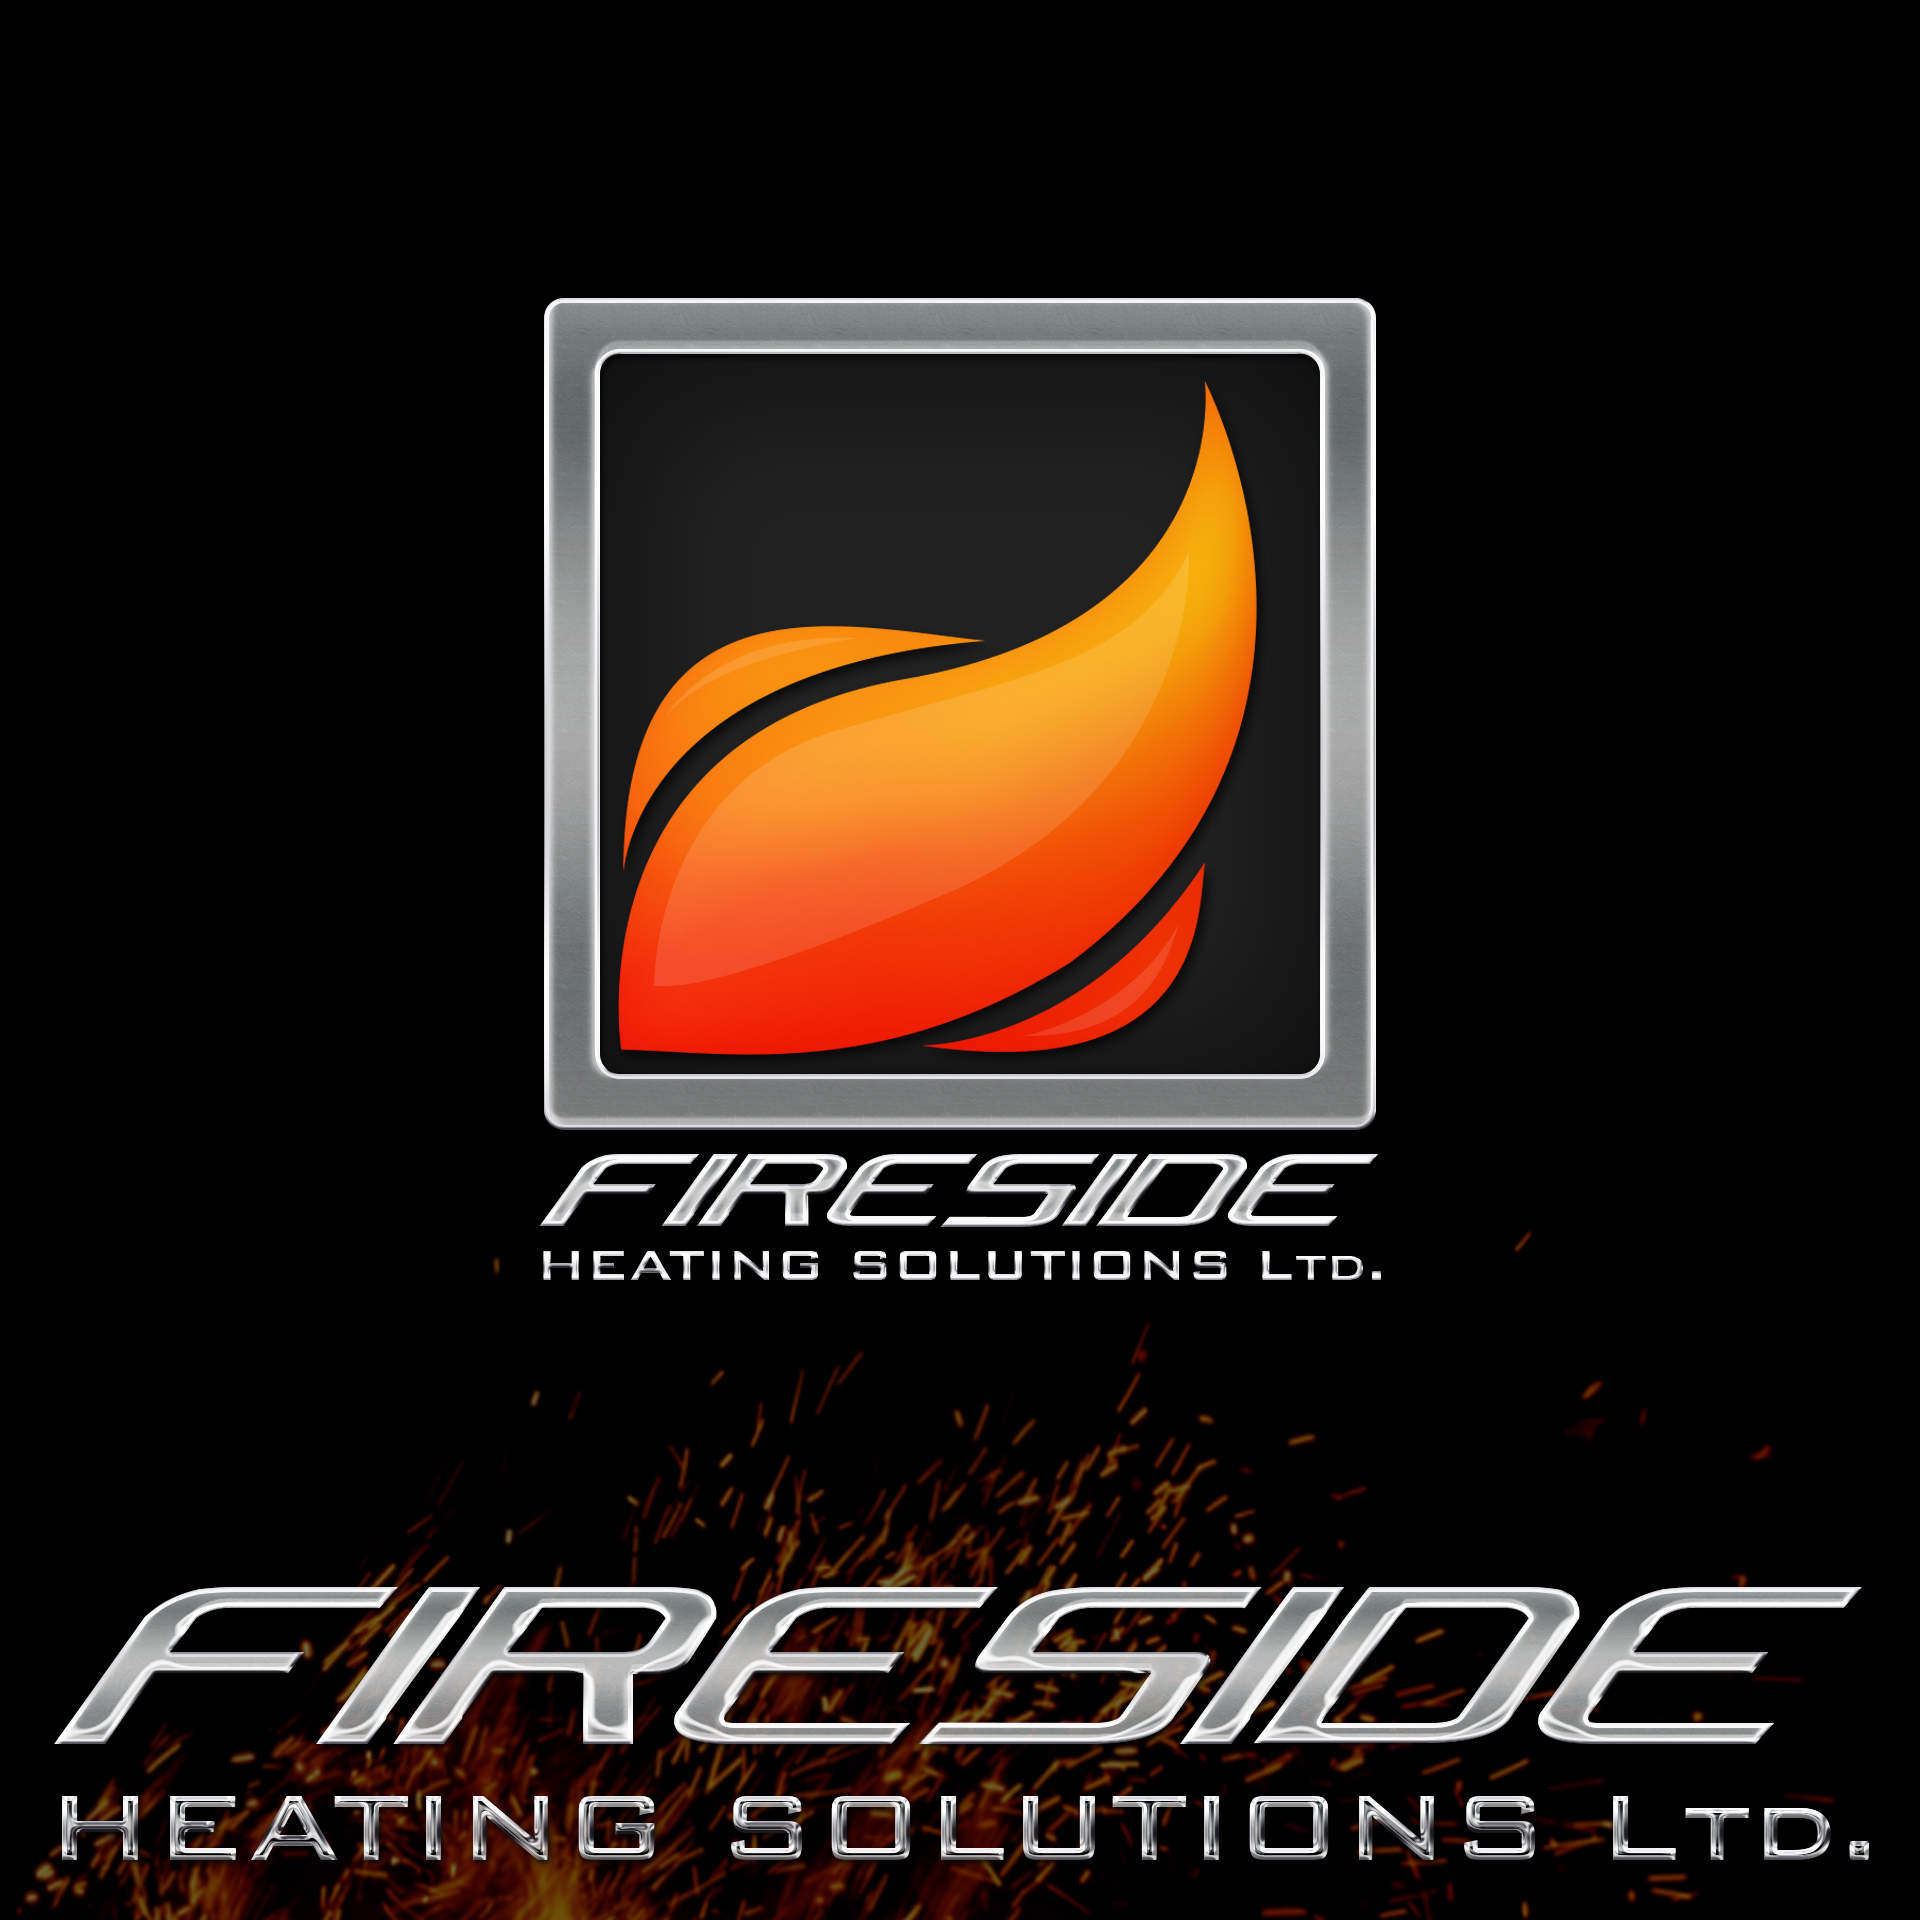 Logo Design by chAnDOS - Entry No. 113 in the Logo Design Contest Creative Logo Design for Fireside Heating Solutions Ltd..